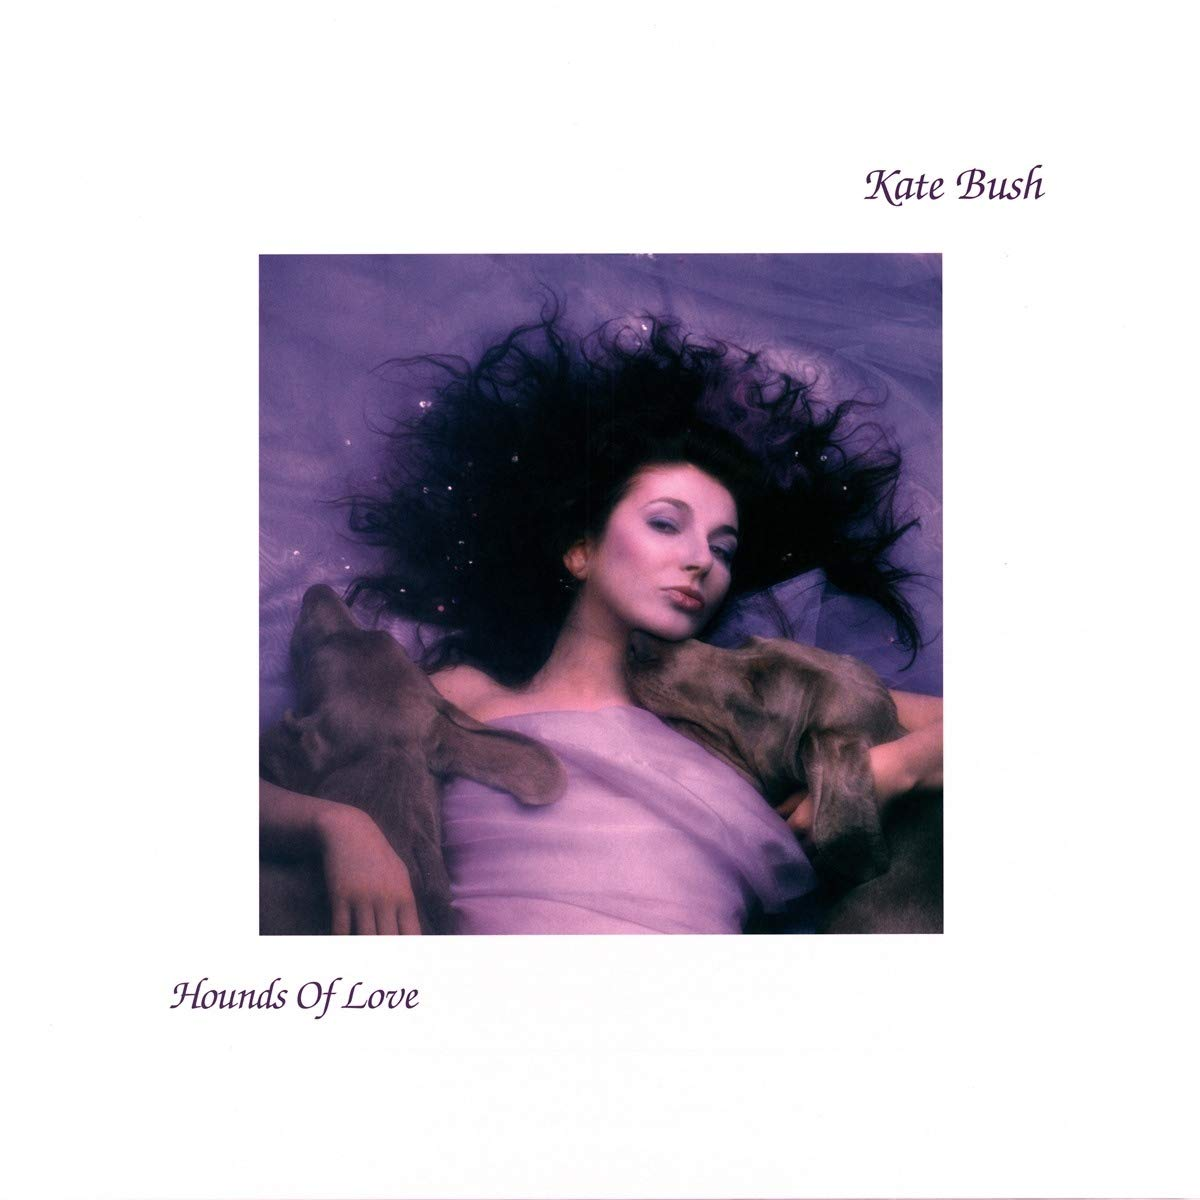 Hounds of Love 80s album cover